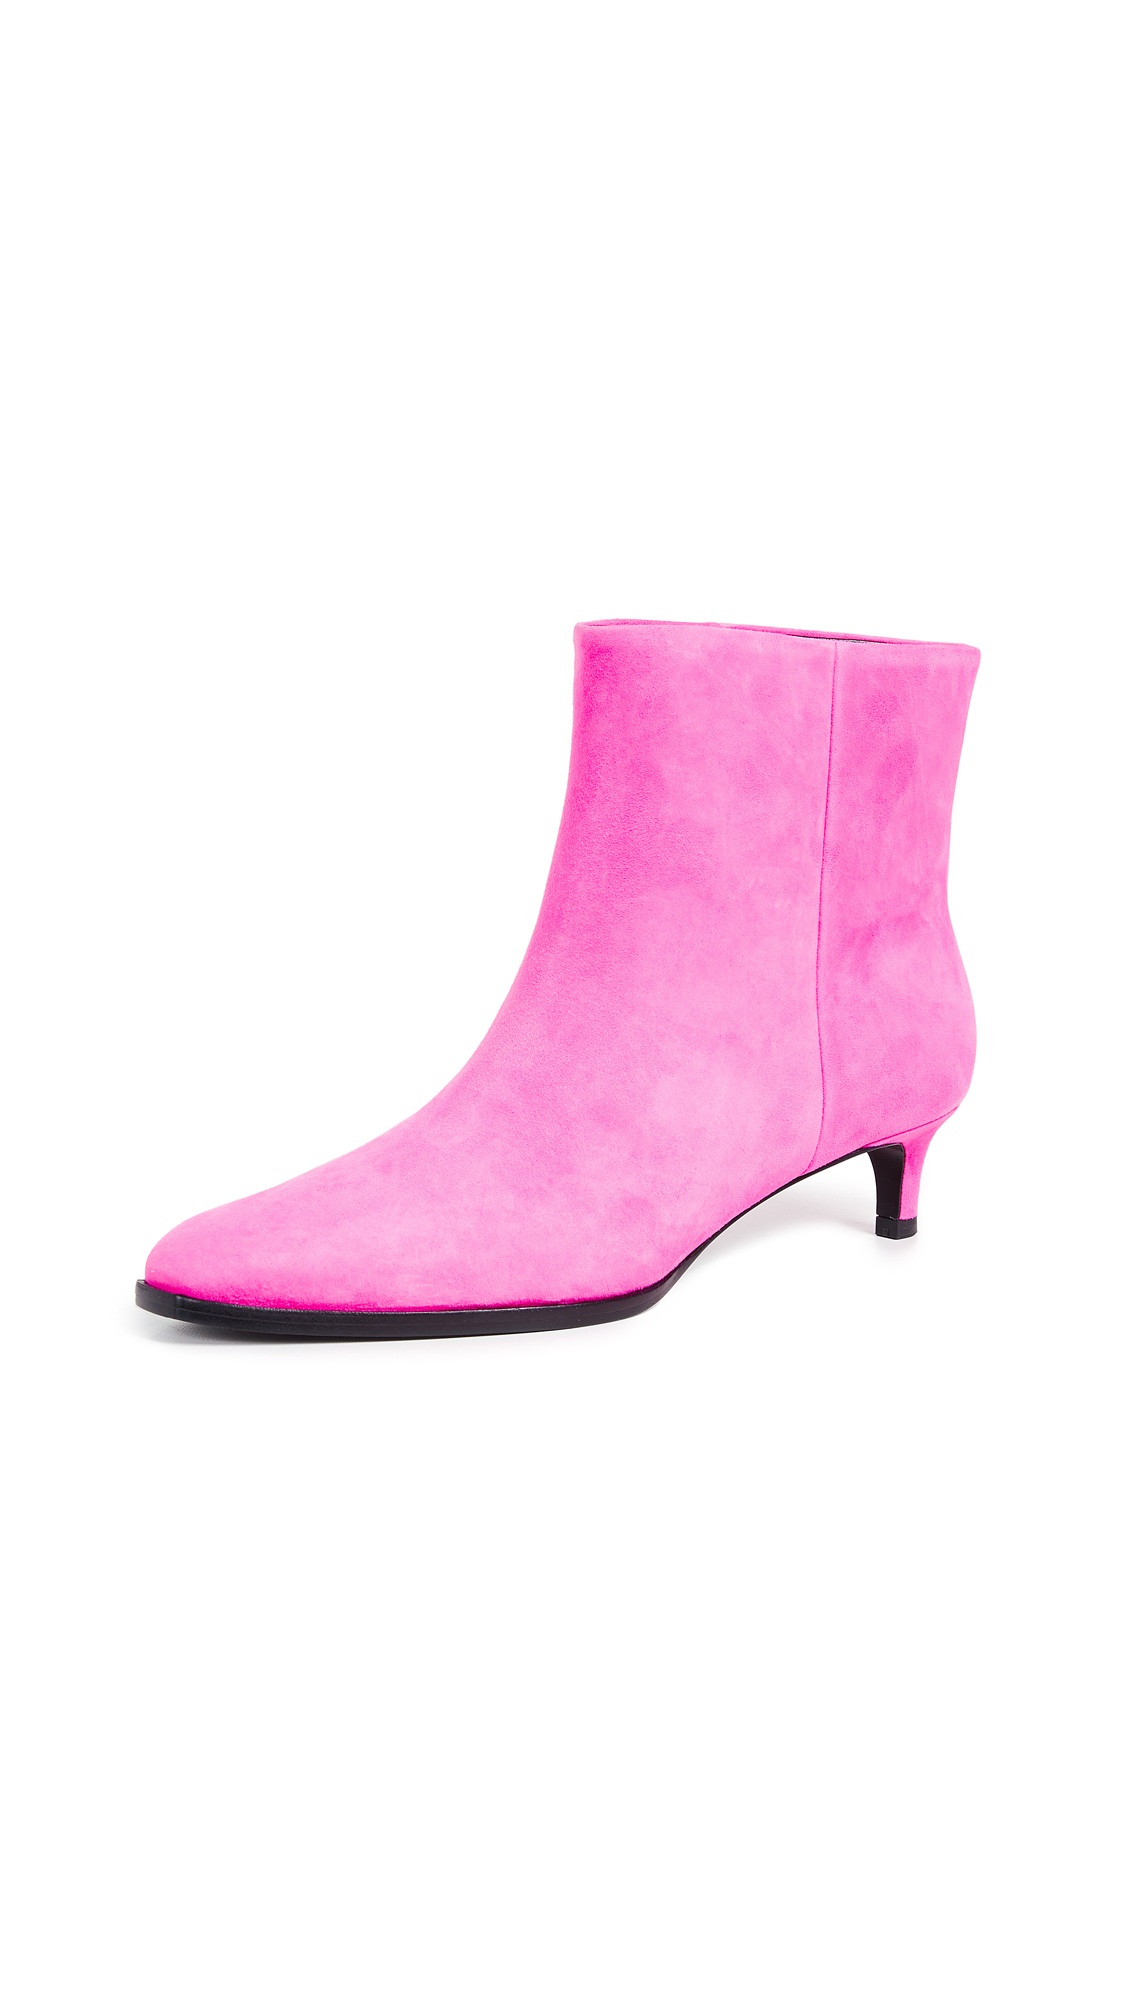 3.1 Phillip Lim Agatha Ankle Booties - Neon Pink